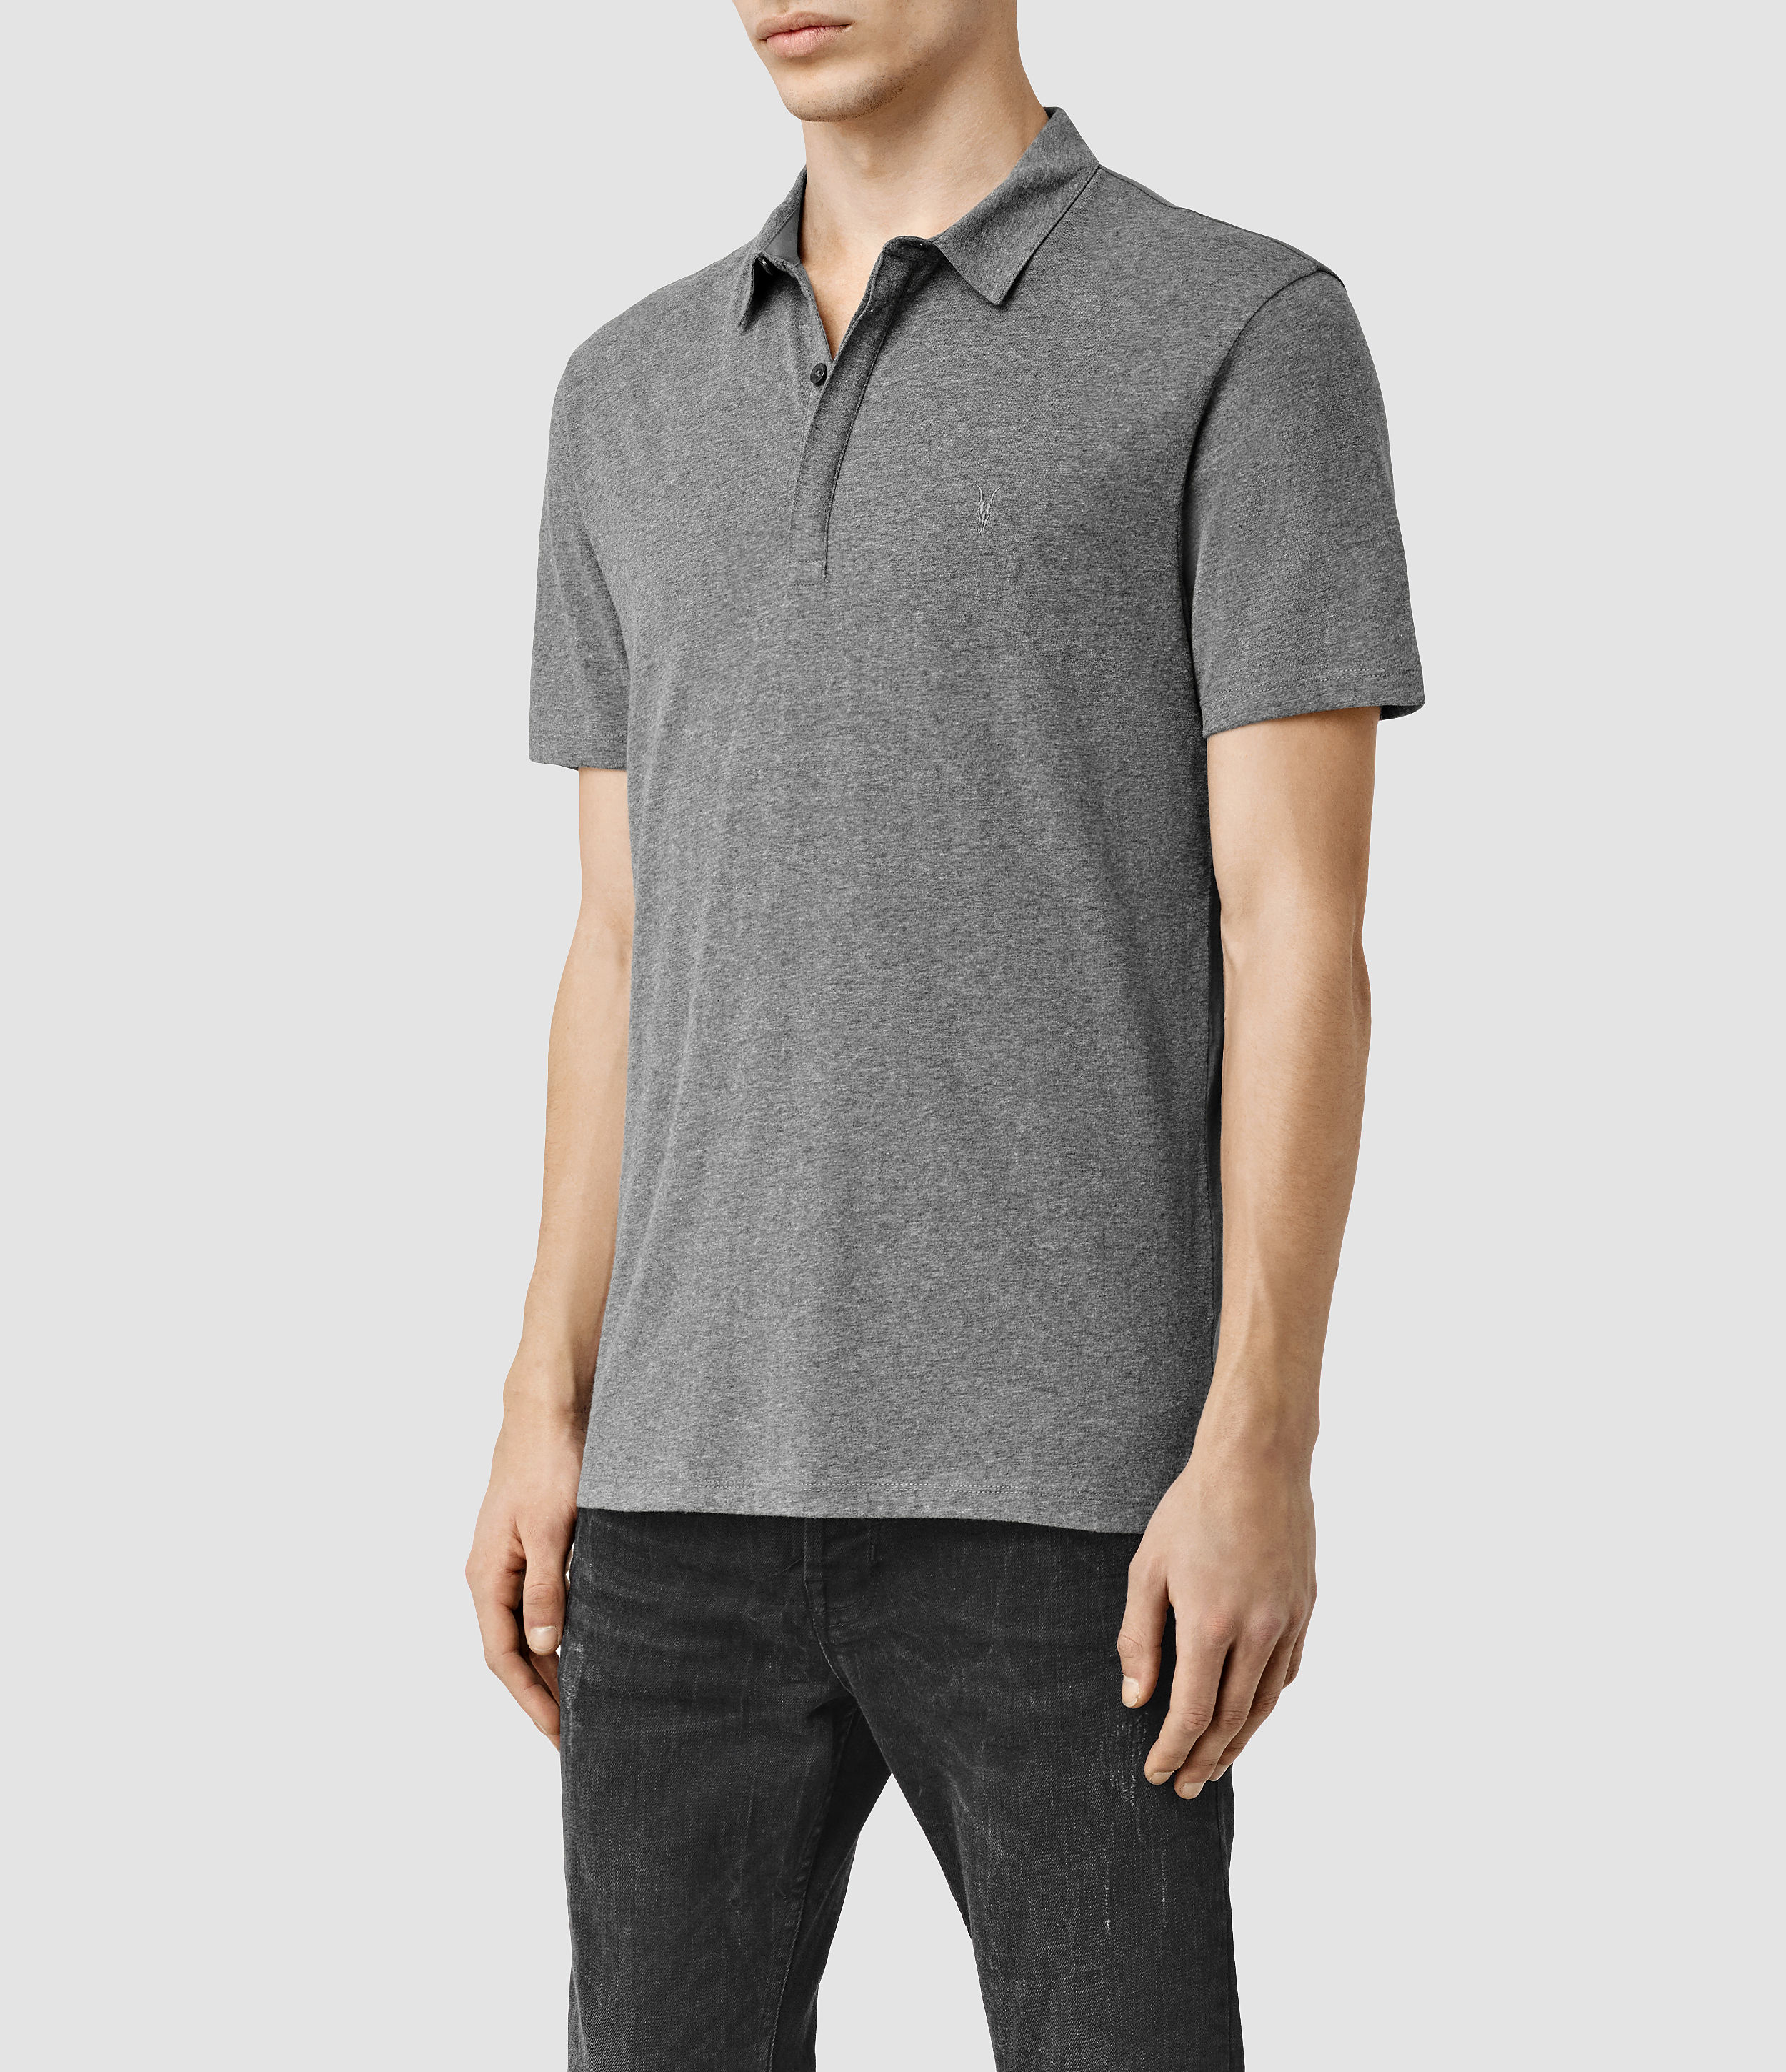 Allsaints tonic panel polo shirt in gray for men lyst for All saints polo shirt